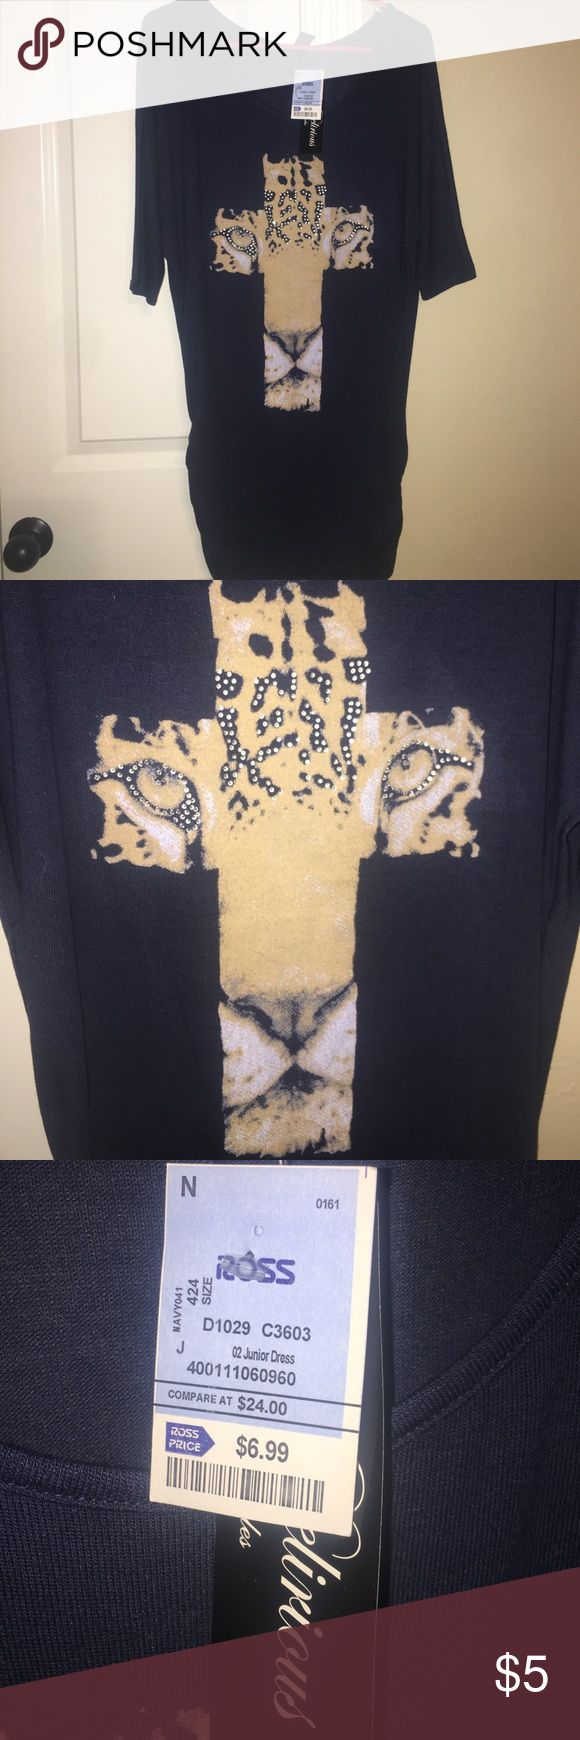 NWT- navy blue tunic with blingy leopard design Super cute but never worn-would be great with leggings Tops Tunics